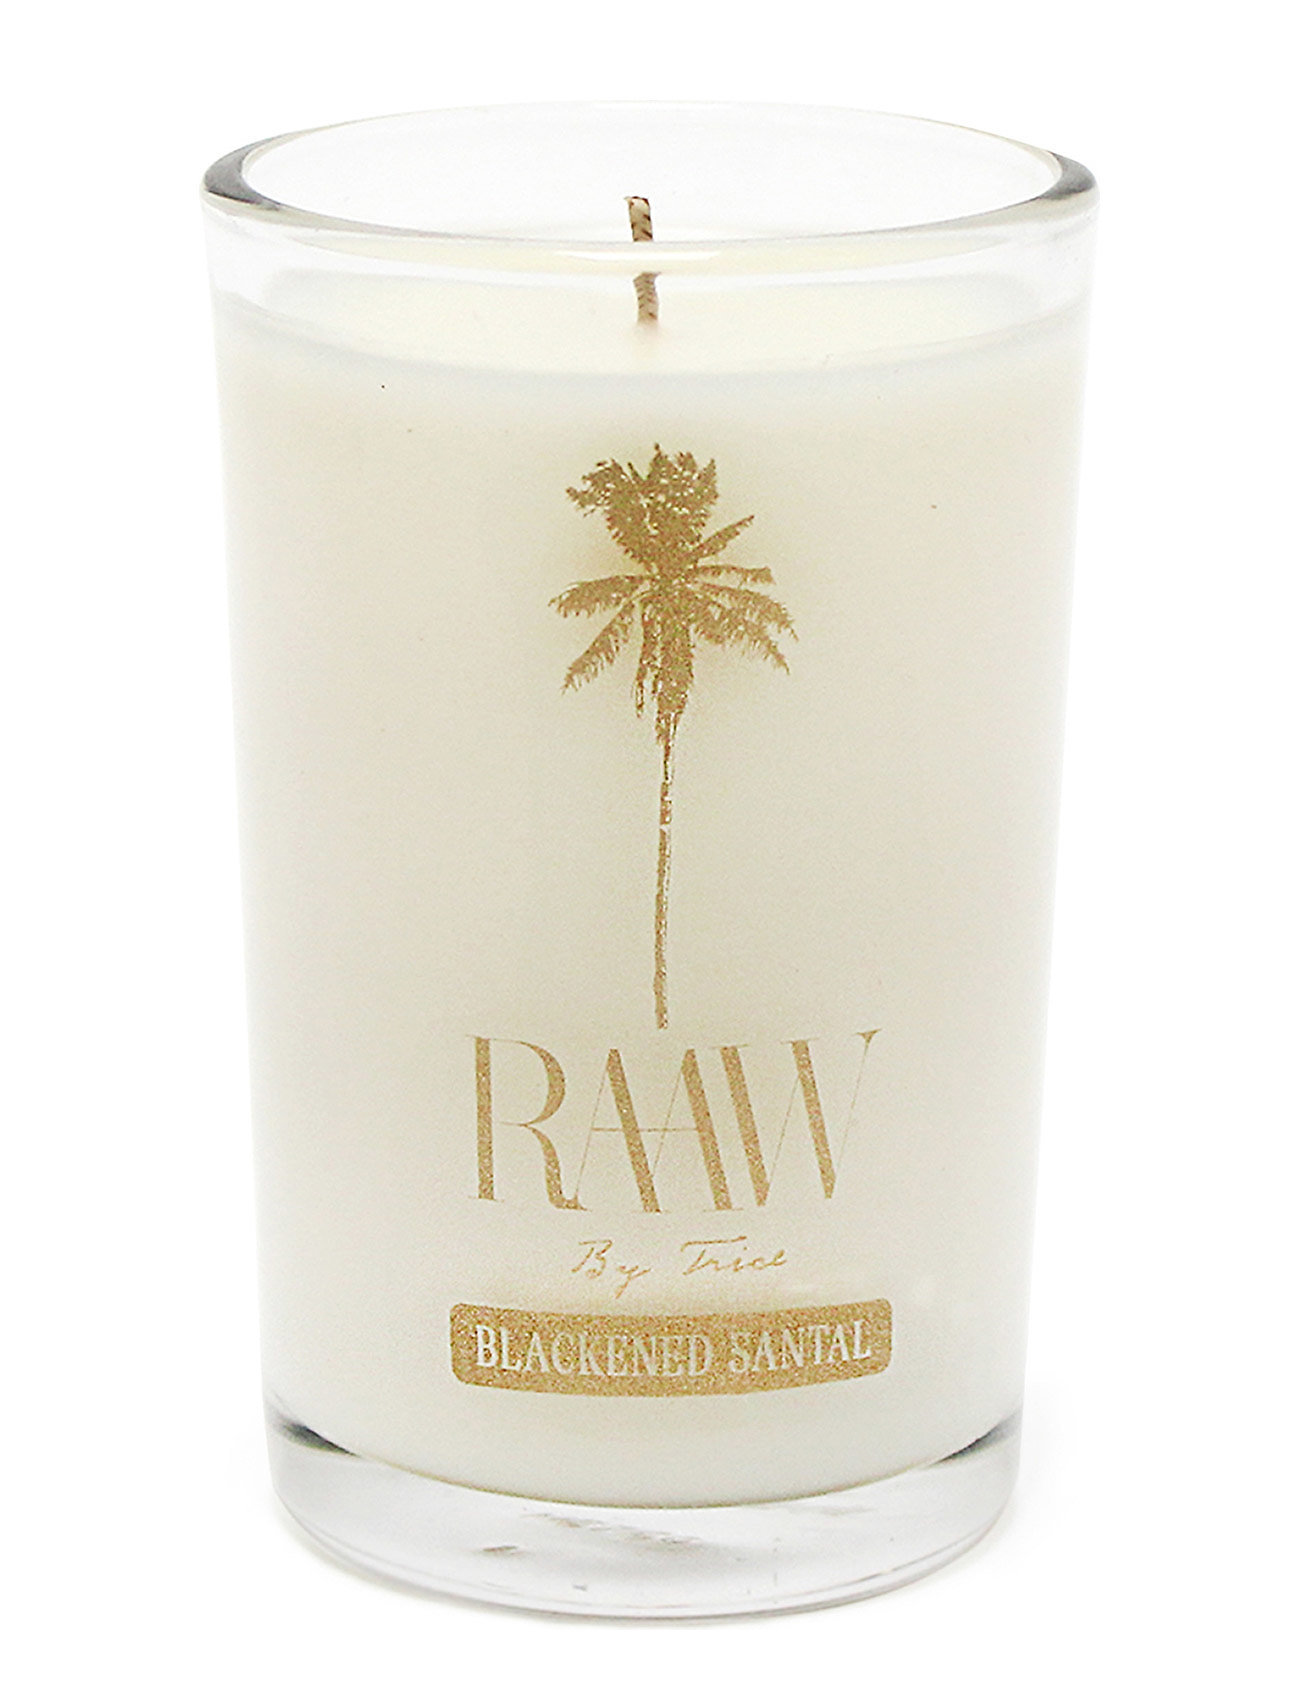 Raaw by Trice BLACKENED SANTAL SCENTED CANDLE - NO COLOR